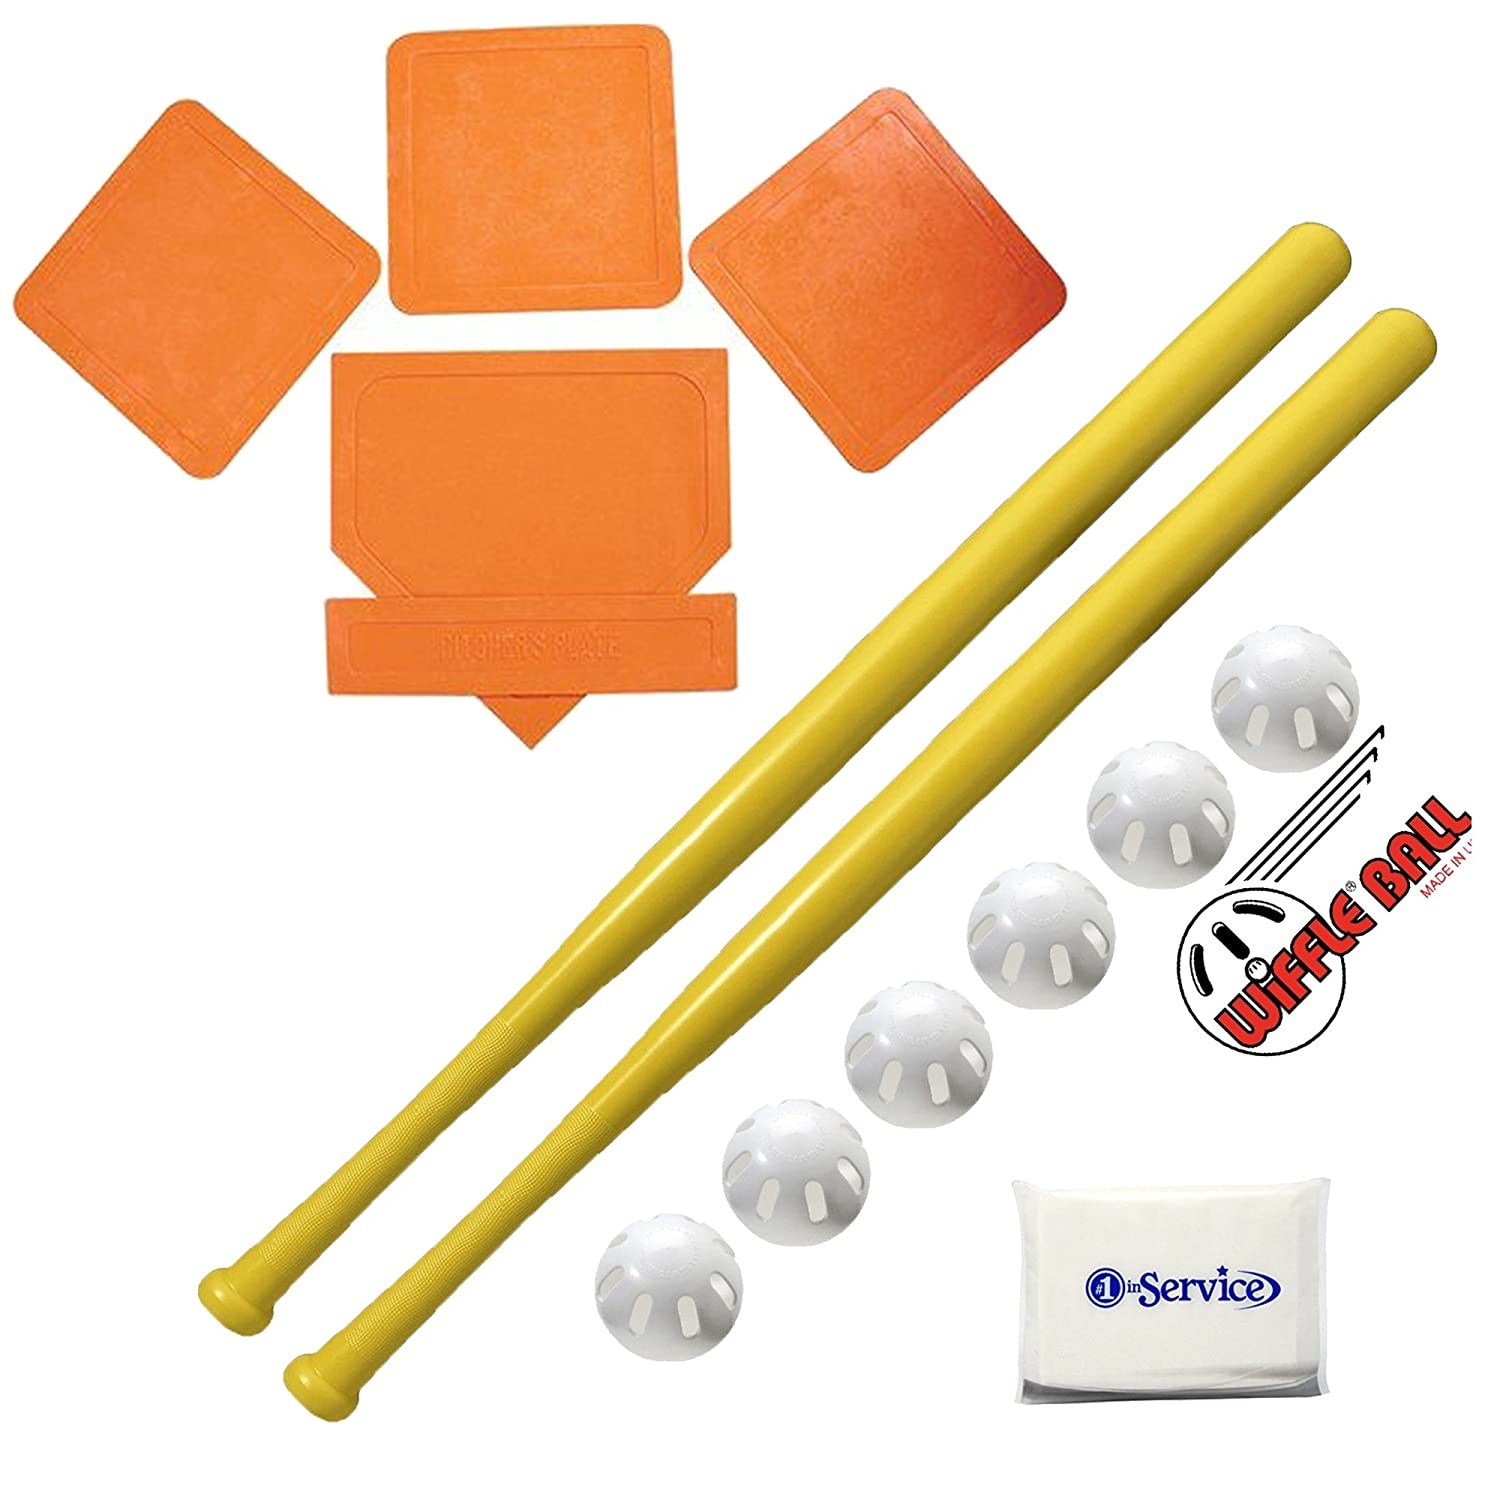 Wiffle Ball 6 Baseballs Official Size - 6 Pack and Wiffle Ball 32